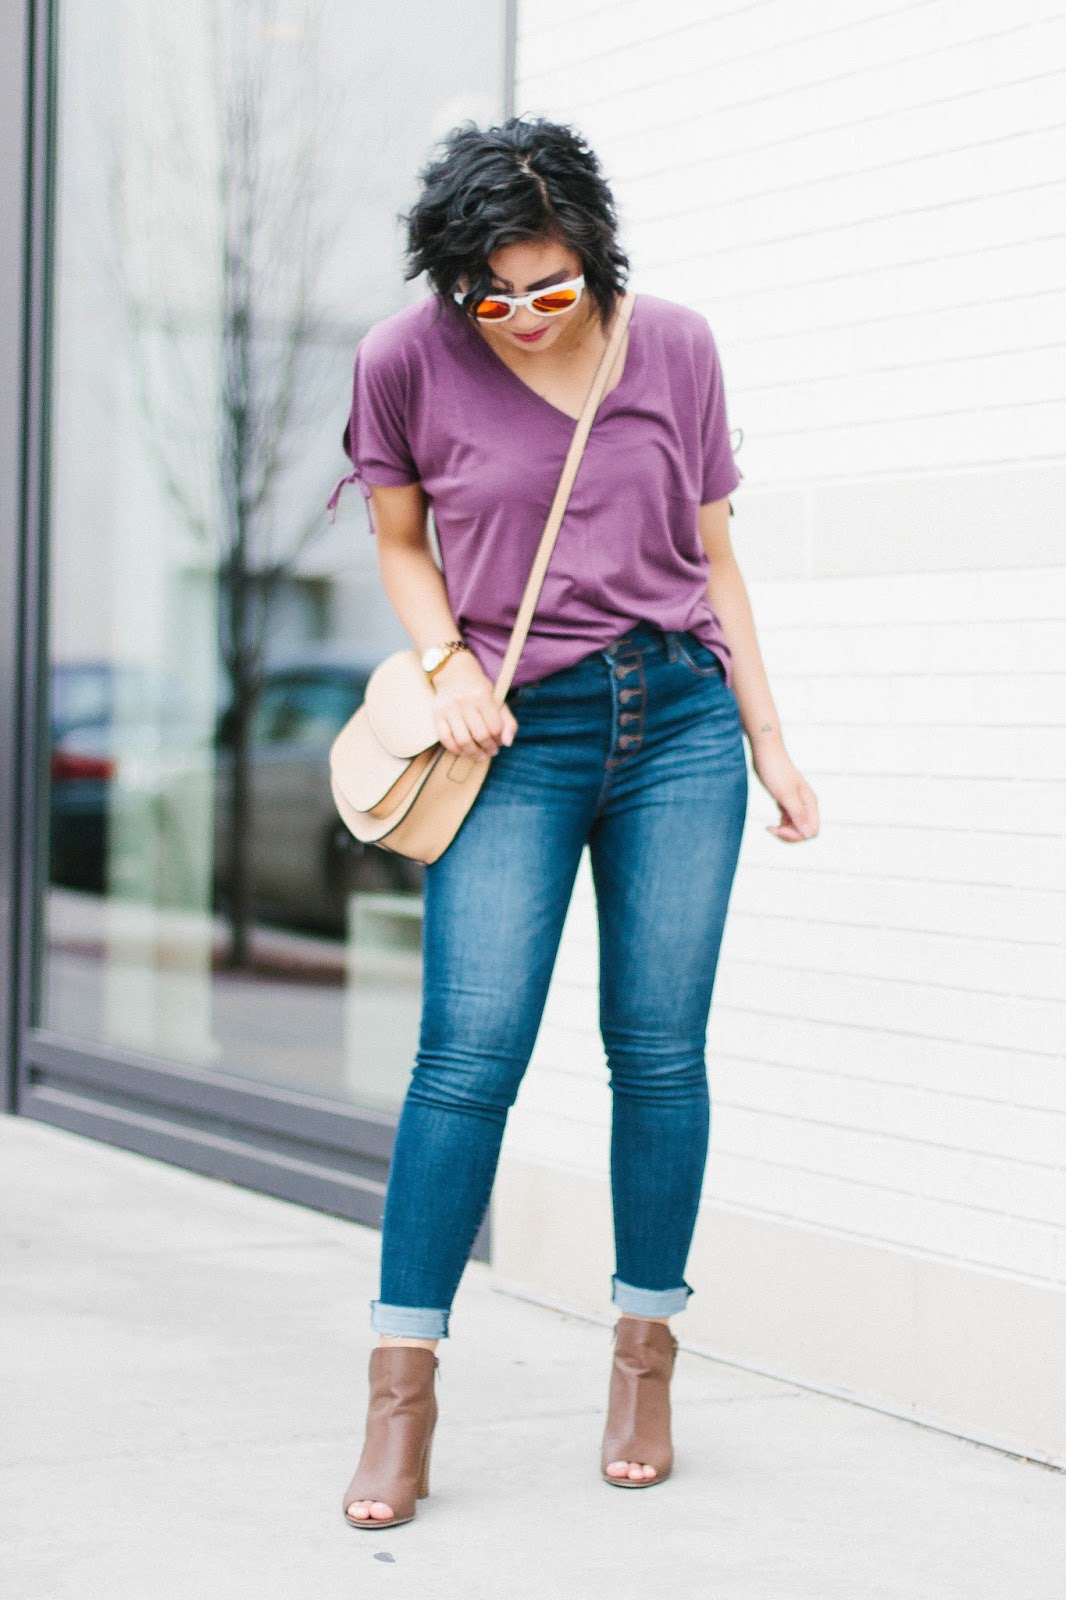 Can You Wear Mirrored Sunglasses In The Fall? - RD\'s Obsessions